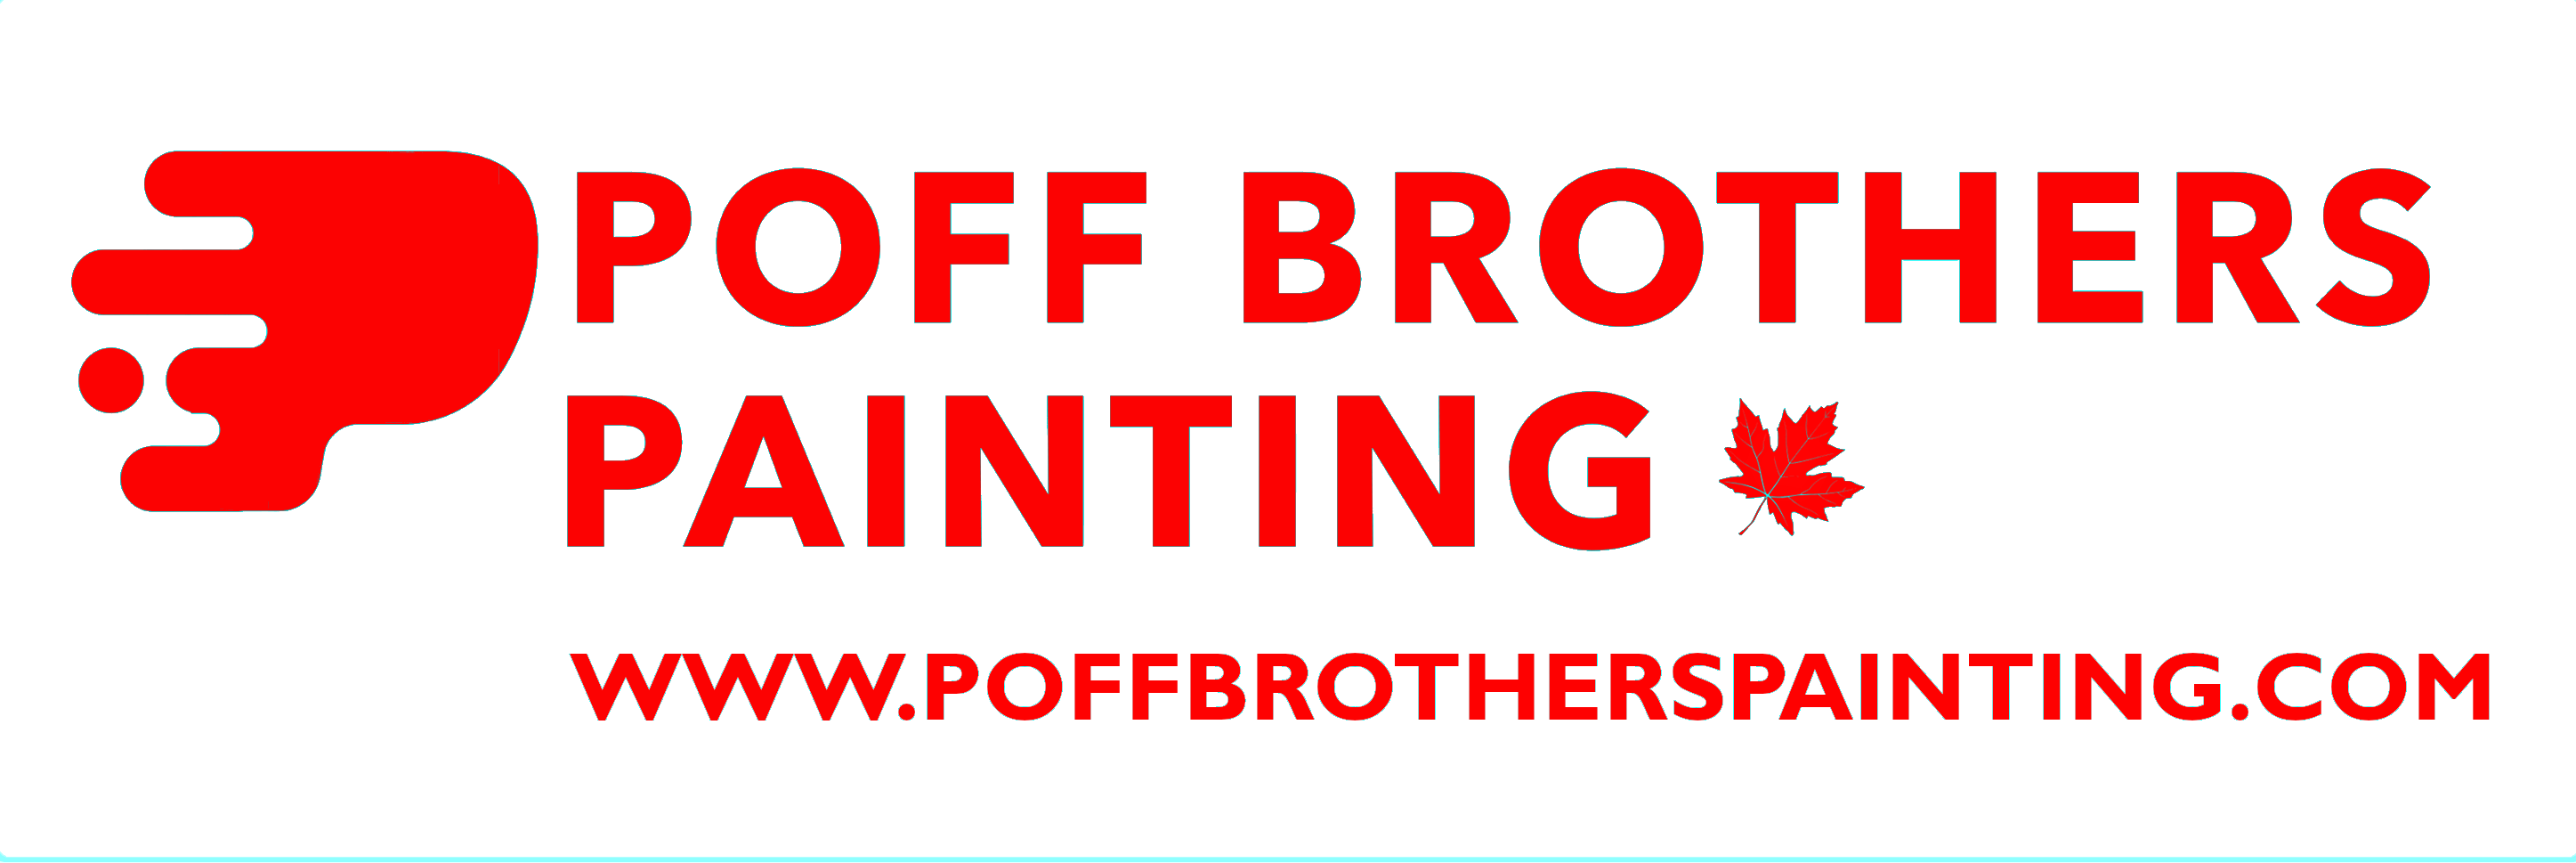 Poff Brothers Painting